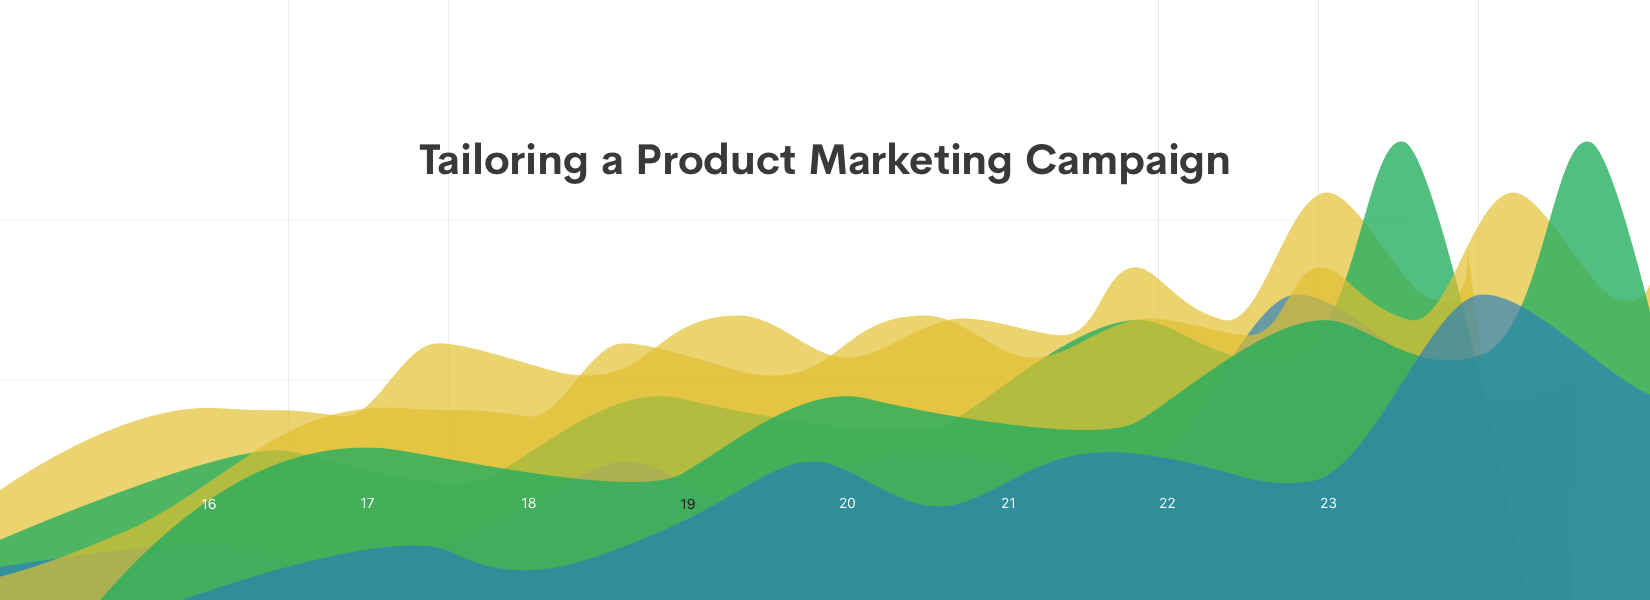 Tailoring a Product Marketing Campaign